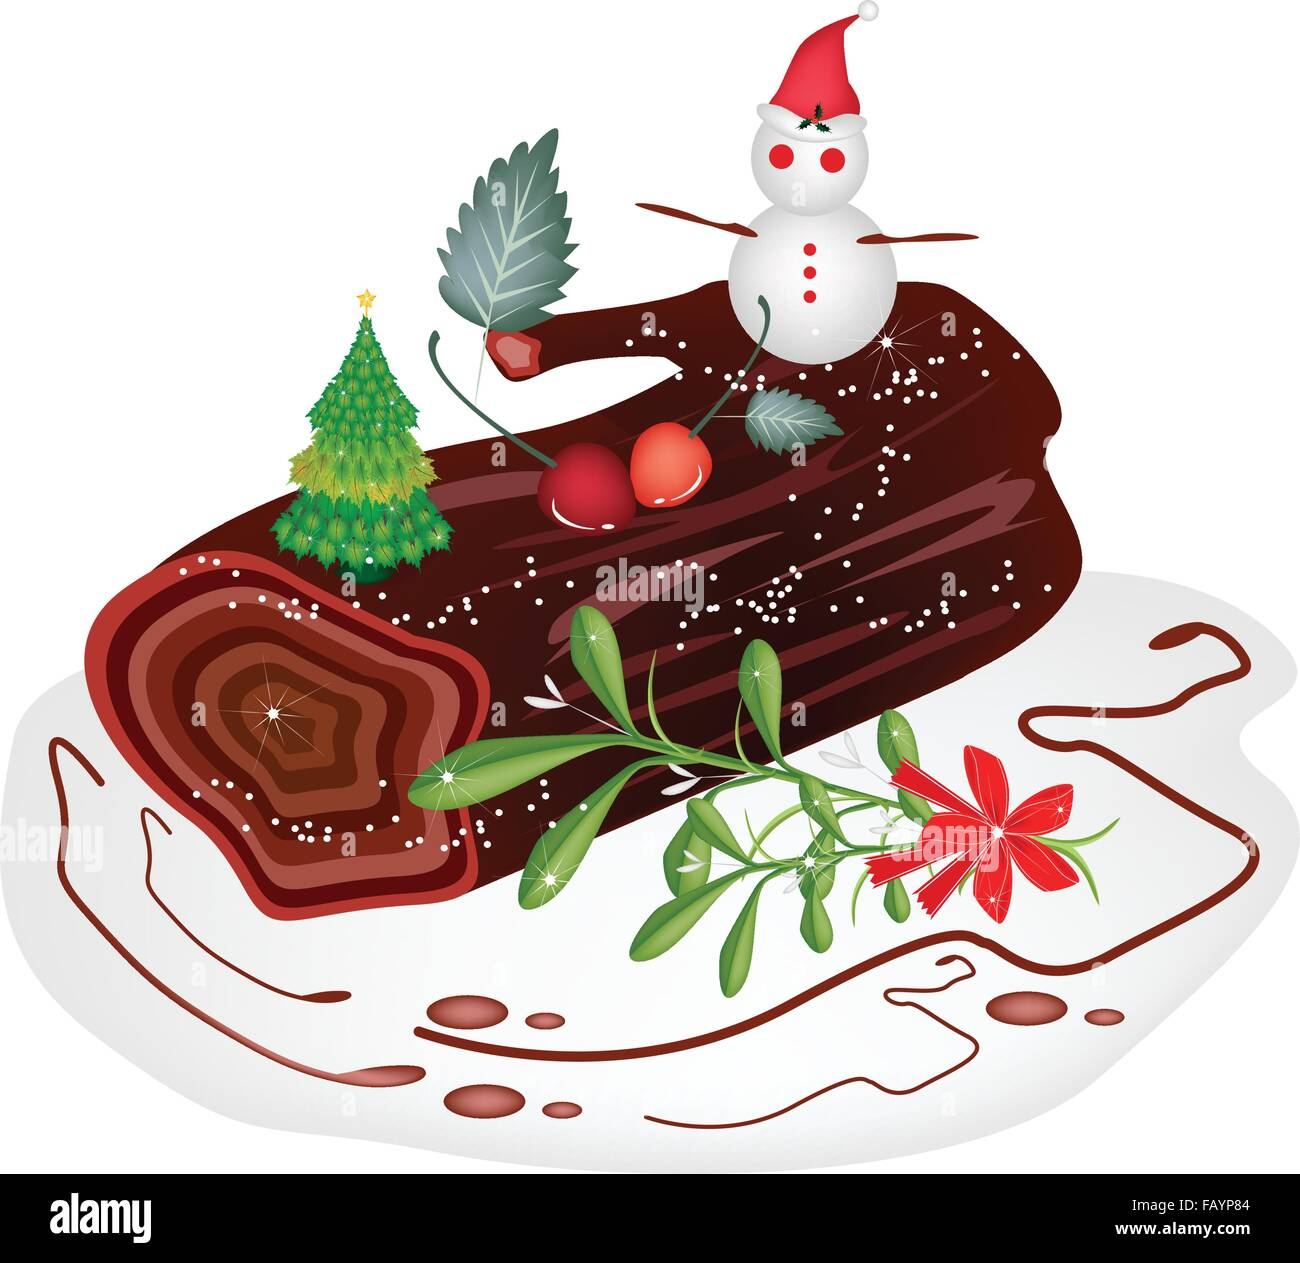 a traditional christmas cake yule log cake or buche de noel with